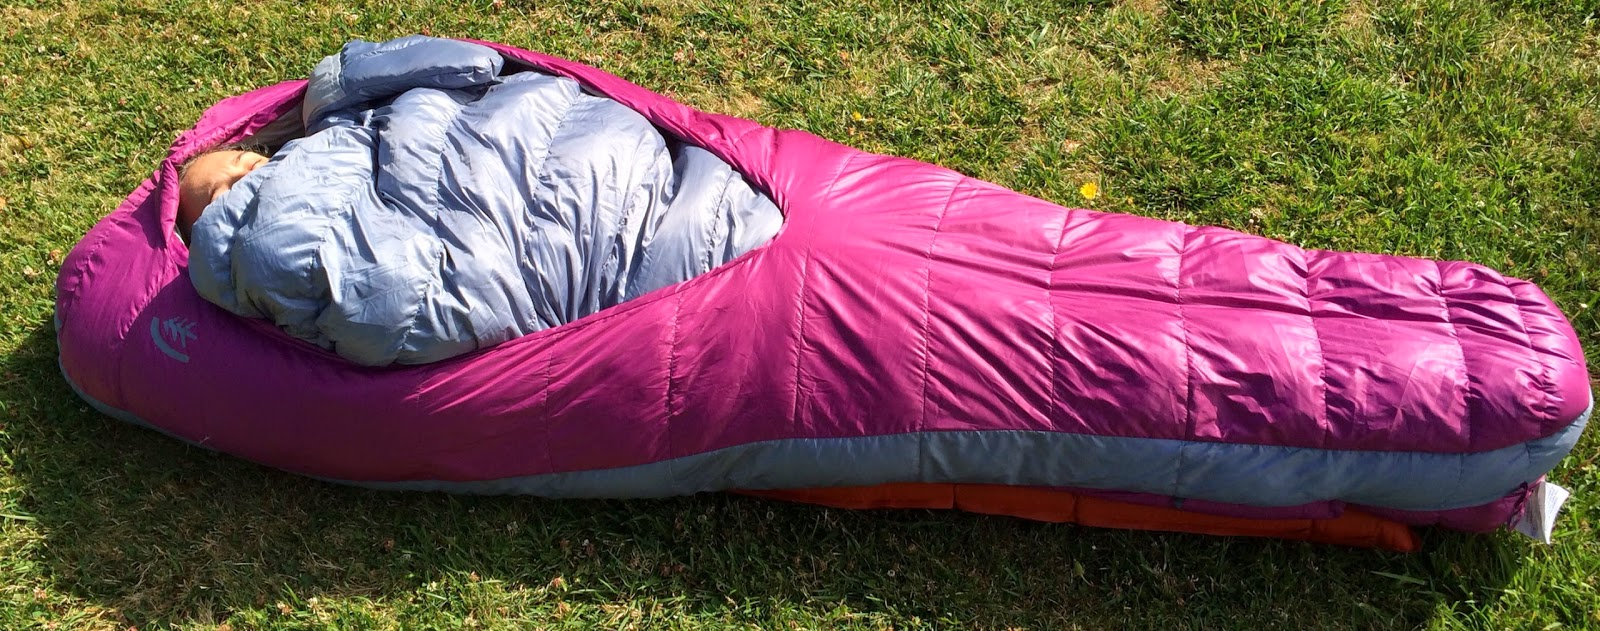 Gear Review Sierra Designs Rocks The Backcountry Bed Sleeping Bag 3 Season